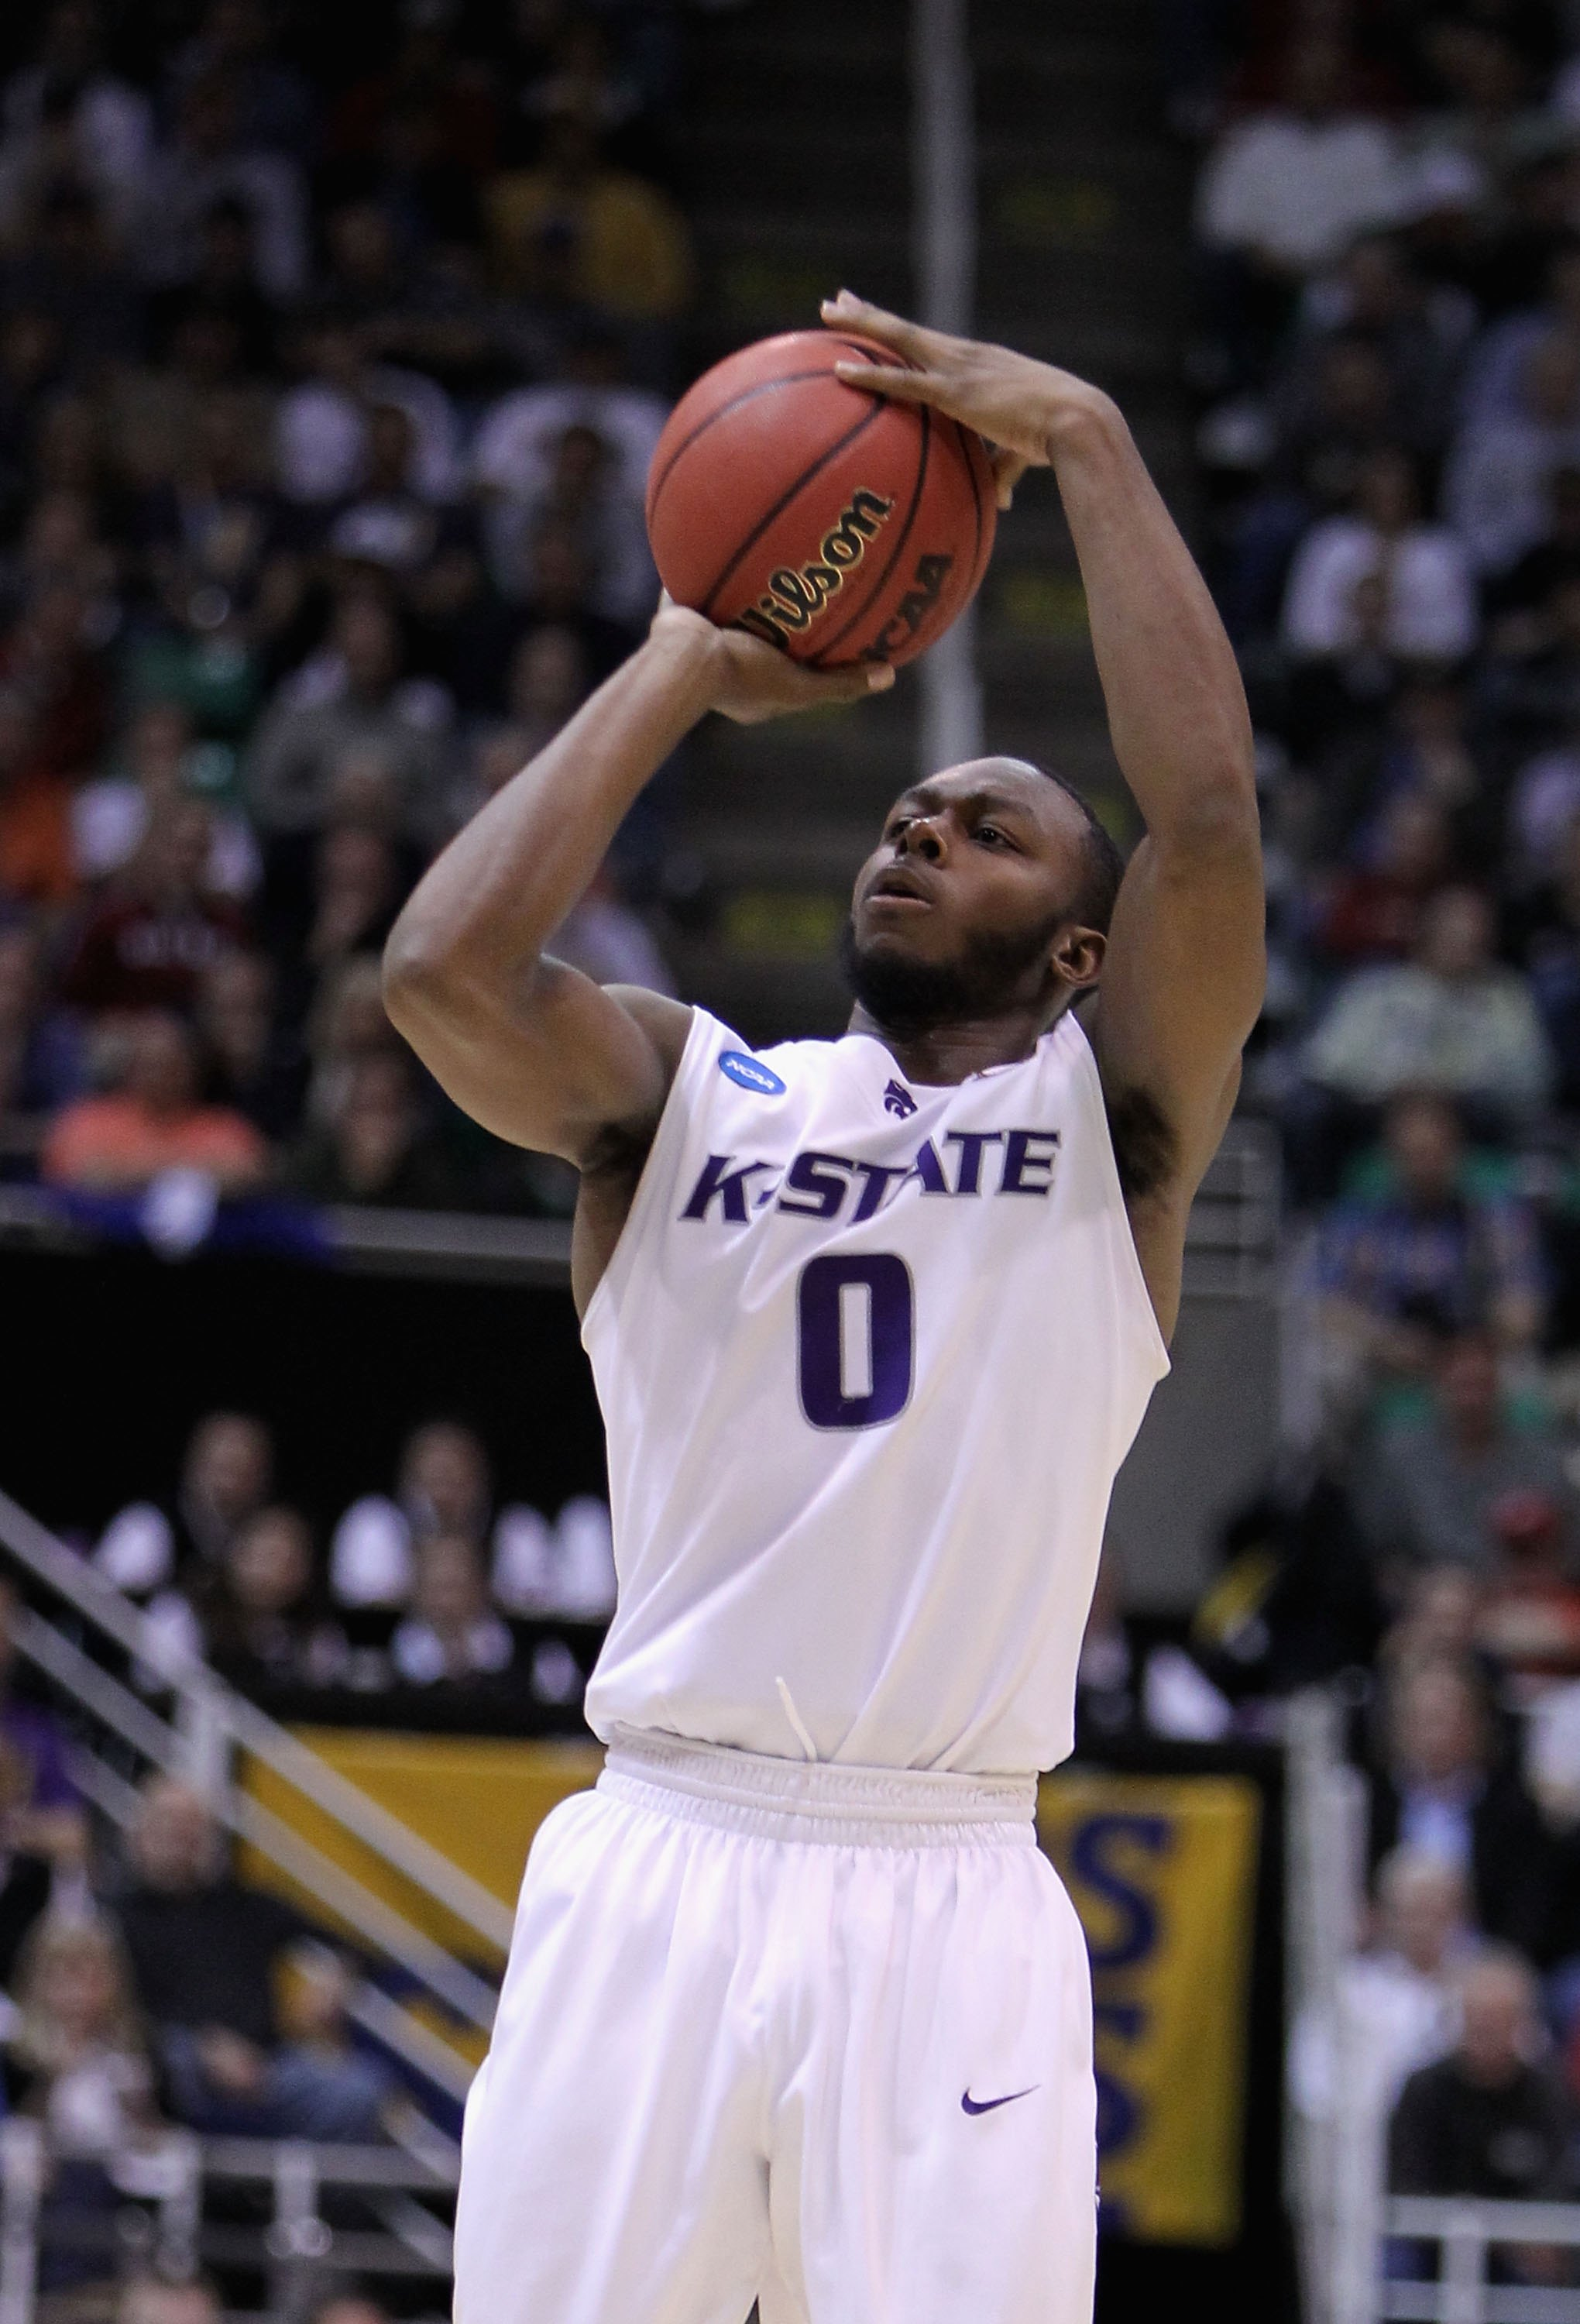 SALT LAKE CITY - MARCH 25:  Jacob Pullen #0 of the Kansas State Wildcats puts up a shot against the Xavier Musketeers during the west regional semifinal of the 2010 NCAA men's basketball tournament at the Energy Solutions Arena on March 25, 2010 in Salt L